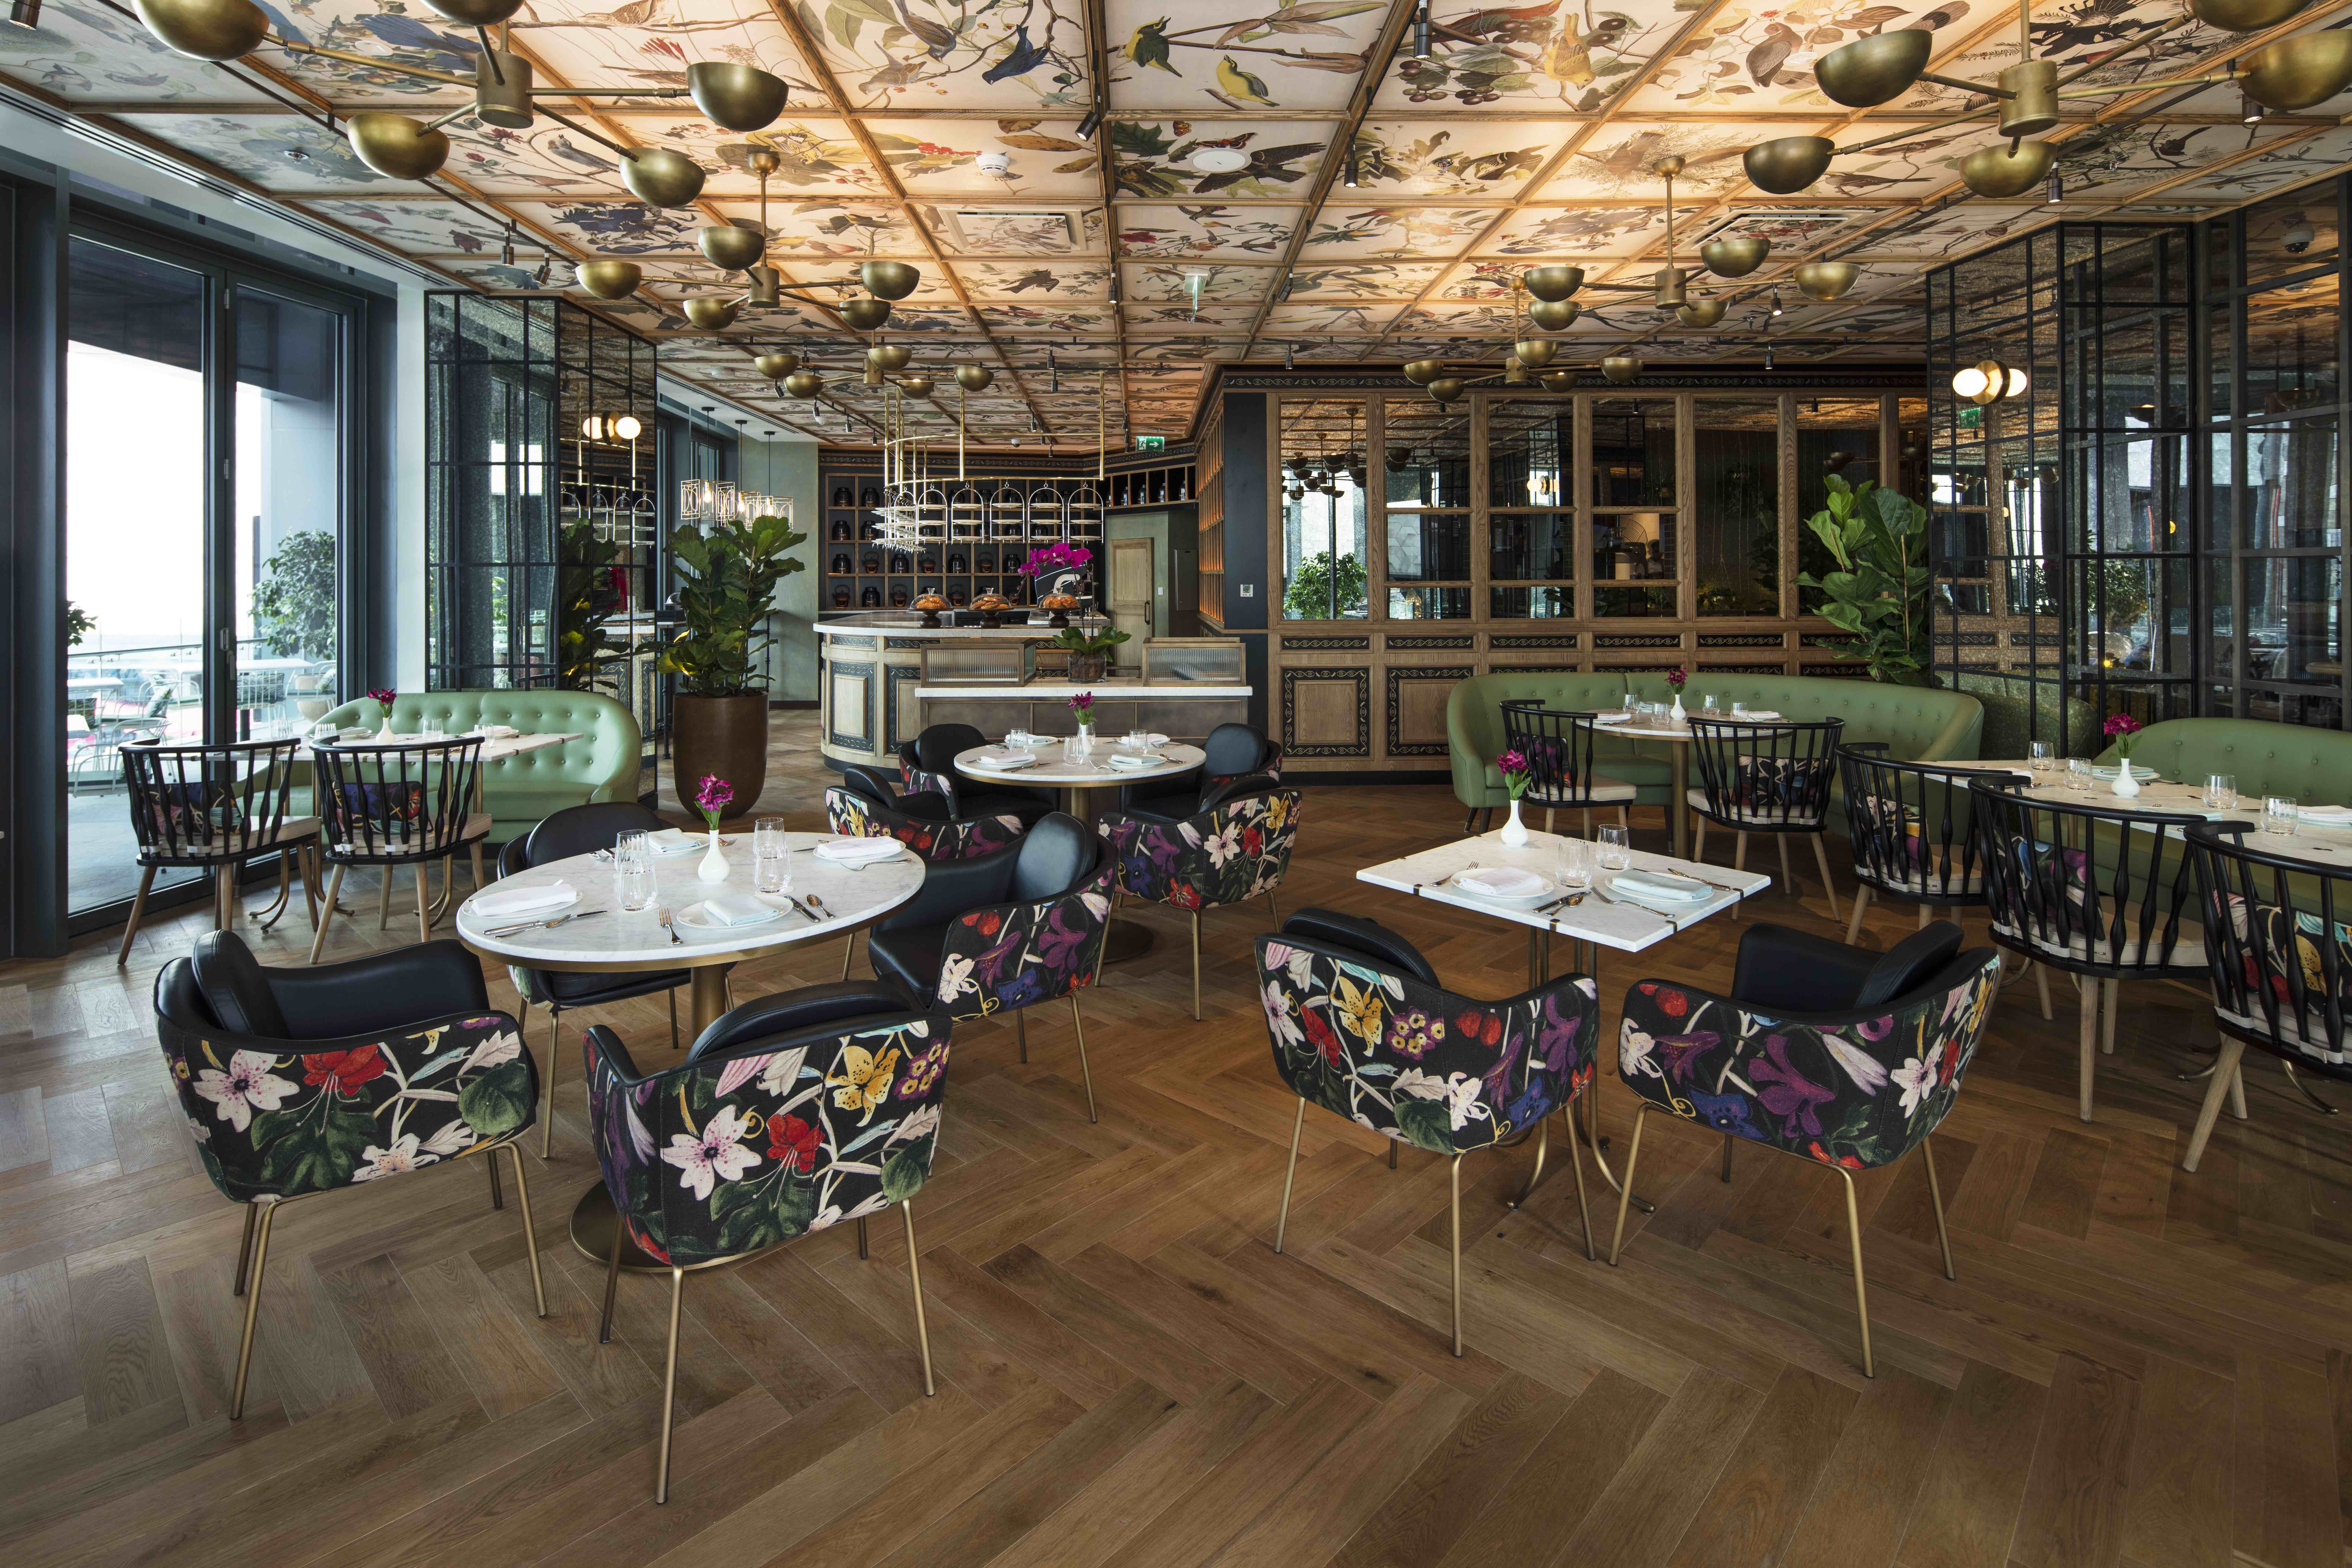 Demoiselle by Galvin restaurant interior design concept